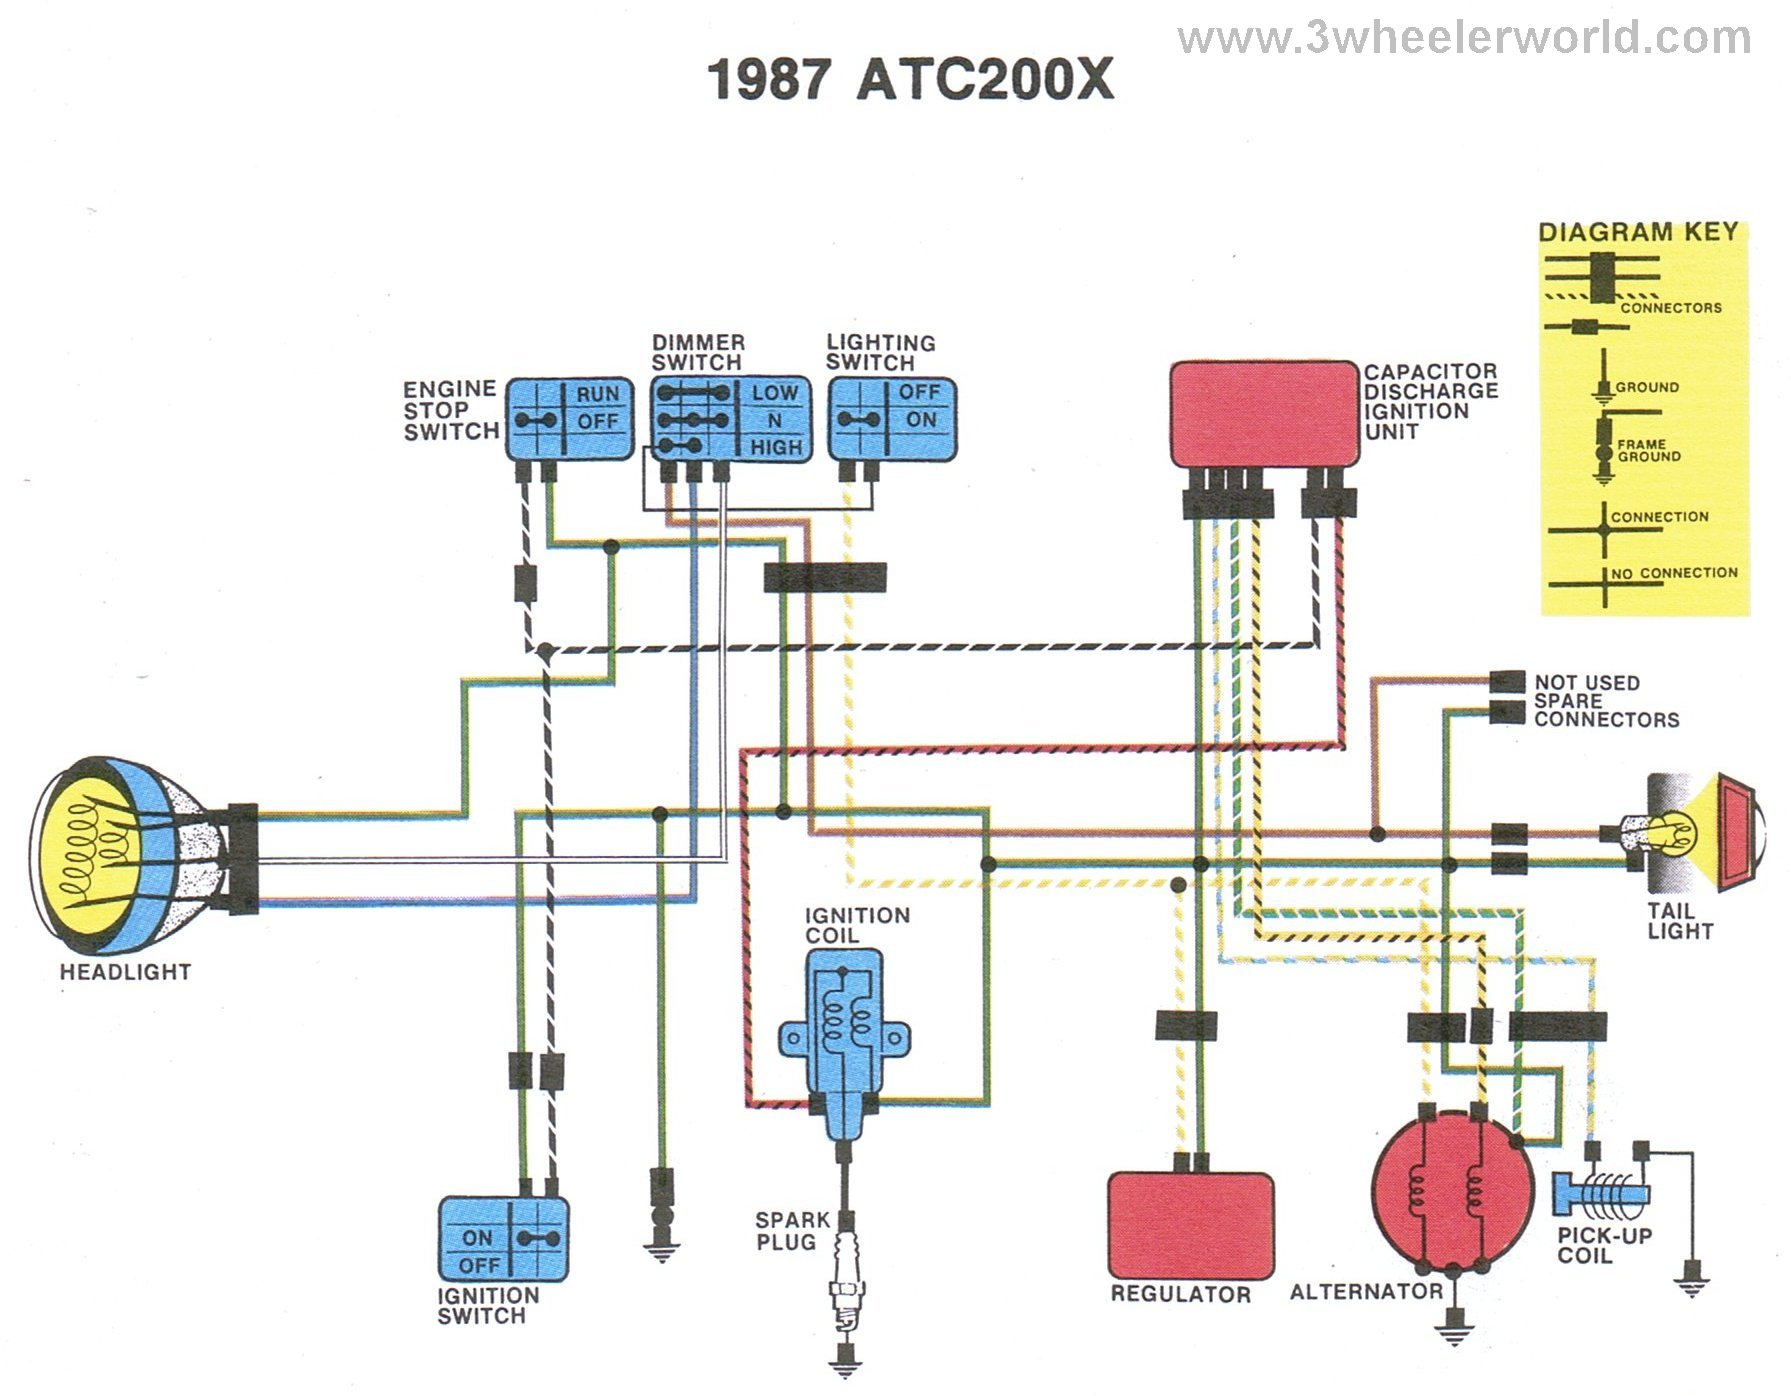 Diagram 1982 Honda Trx 200 Wiring Diagram Full Version Hd Quality Wiring Diagram Sitexwai Dolcialchimie It